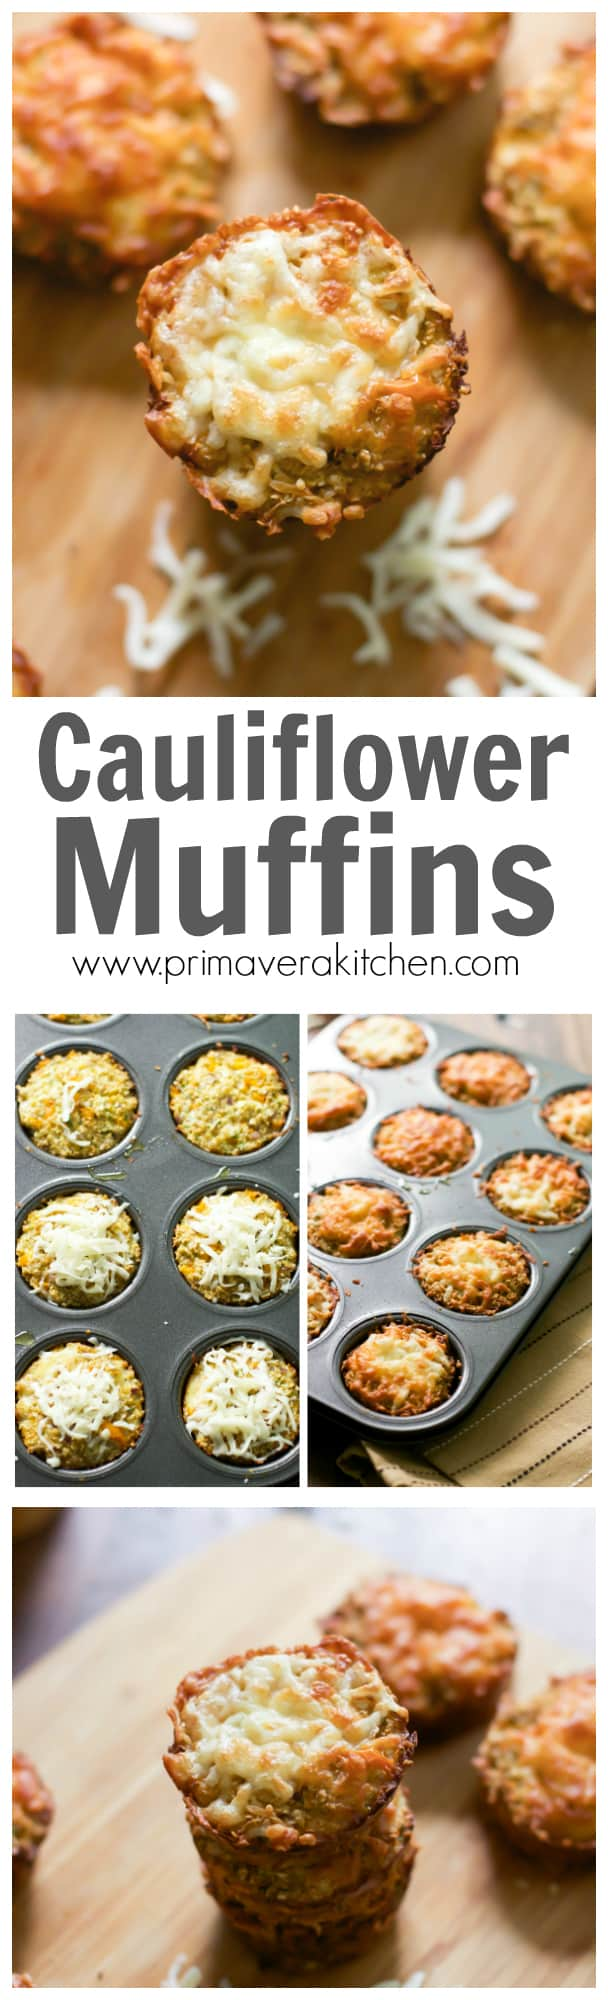 Cauliflower muffins - These Caulflower Muffins are gluten-free, low-carb and high in fiber. They are perfect side dish, appetizer or even a delicious on-the-go quick snack!!